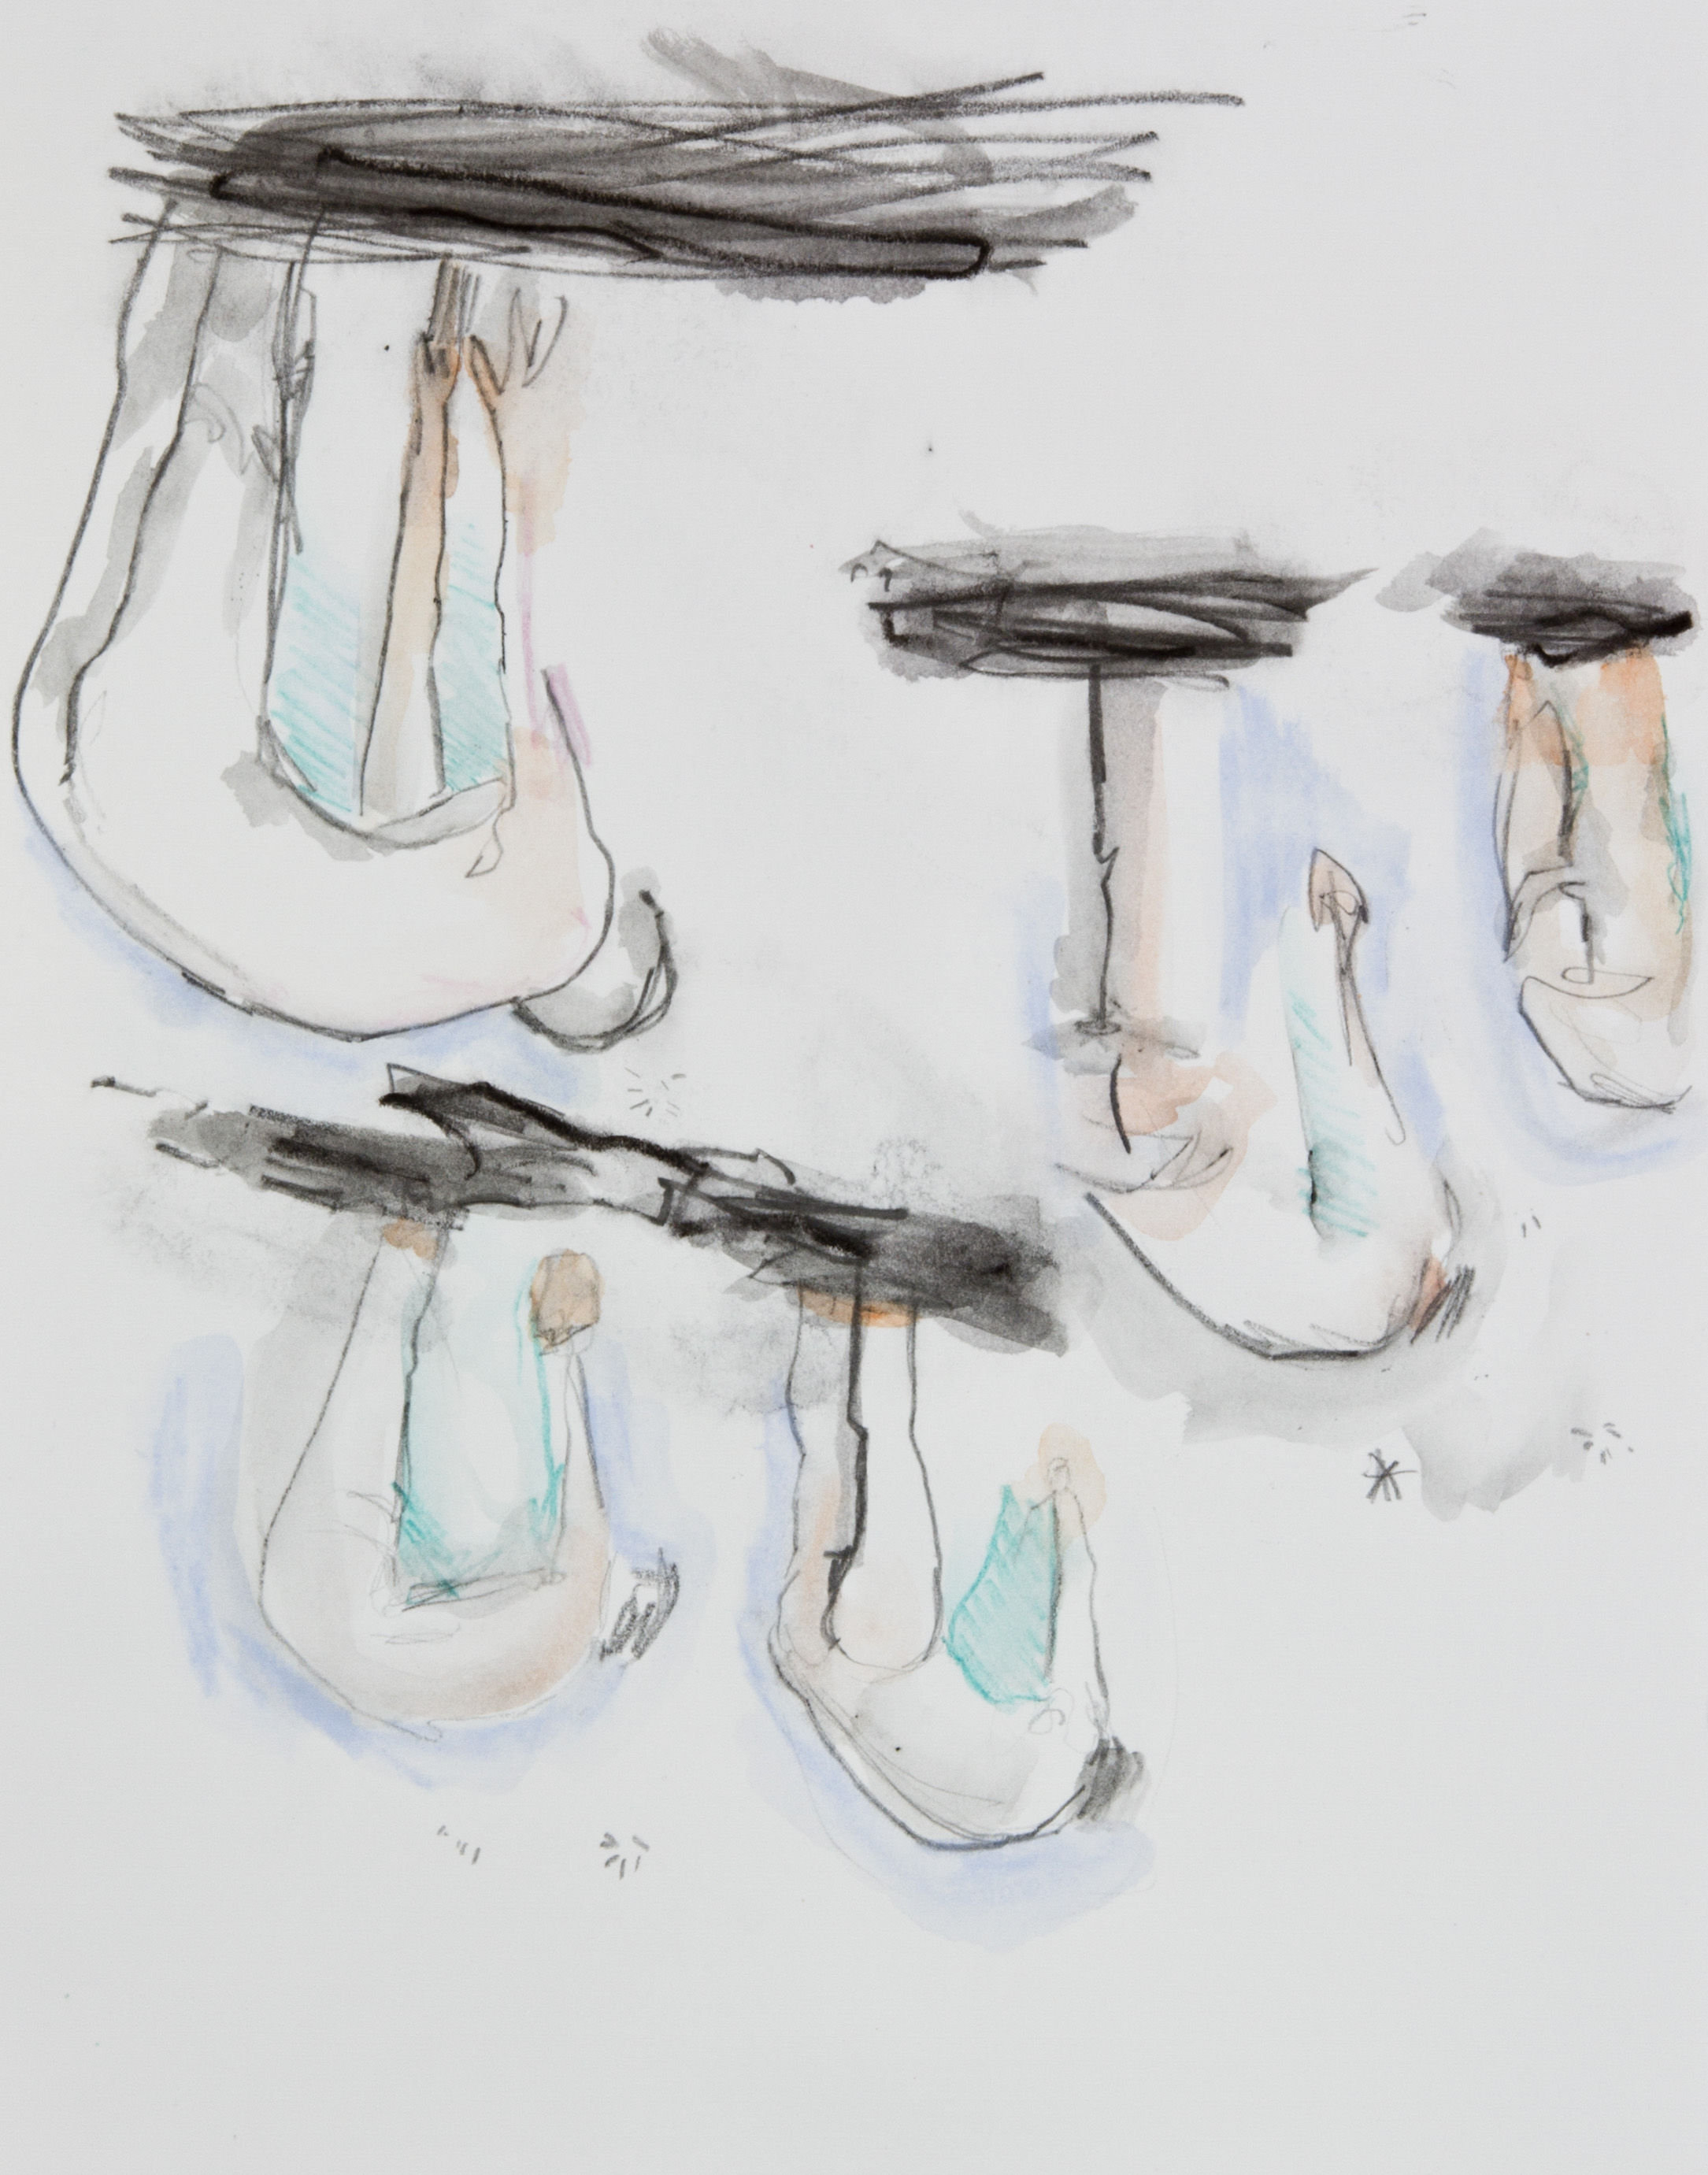 They Fell From Above, 2013, graphite, crayon and watercolor pencil on paper, 11x14 inches